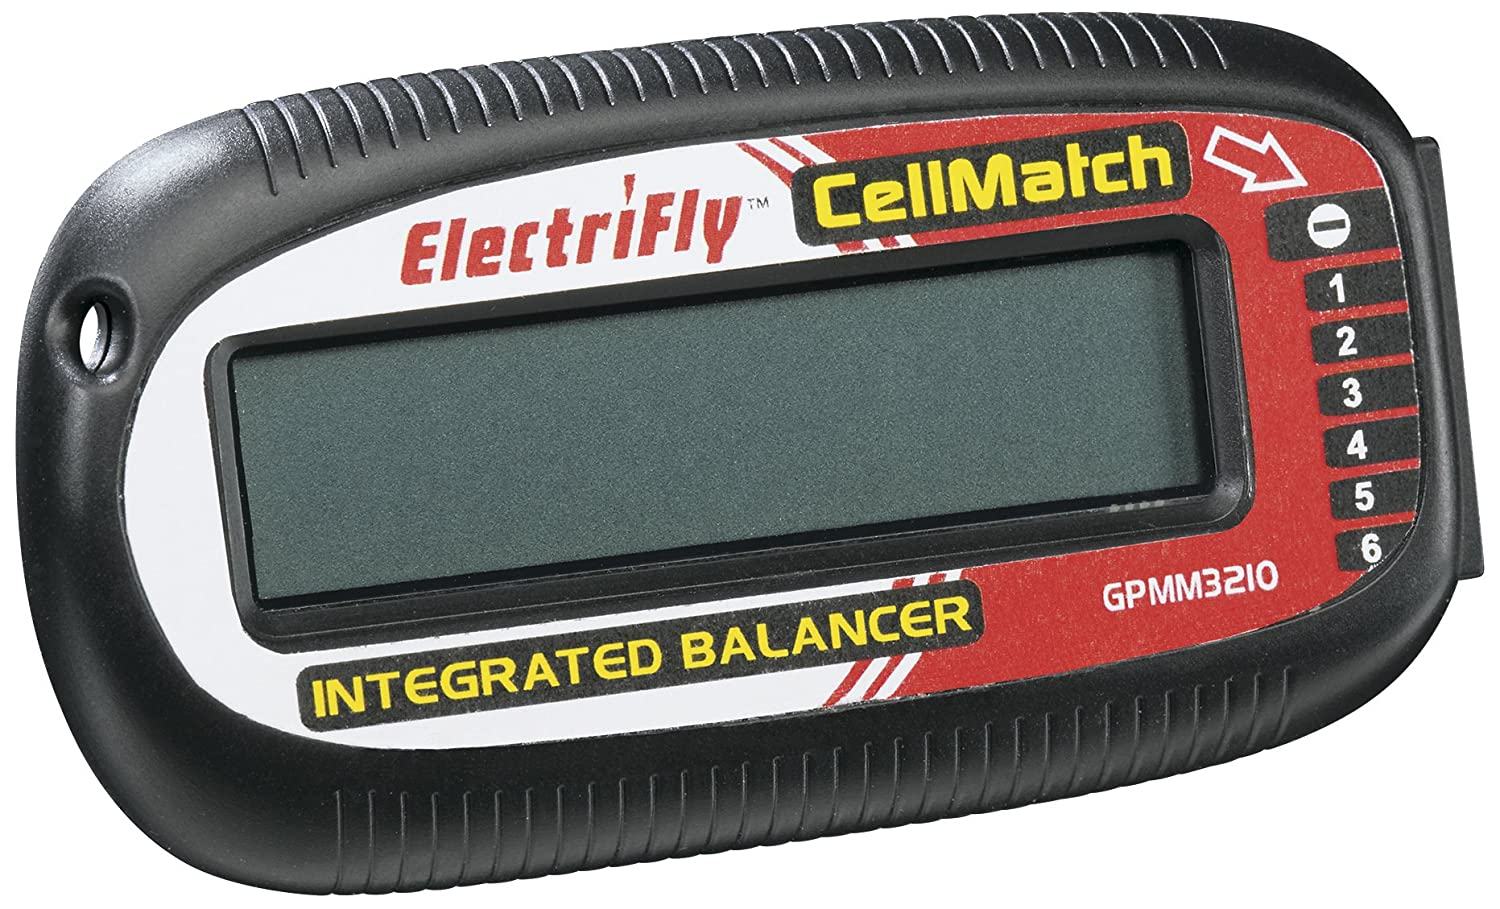 Cell Match Lipo 2-6s Balancer - Sconto 10%